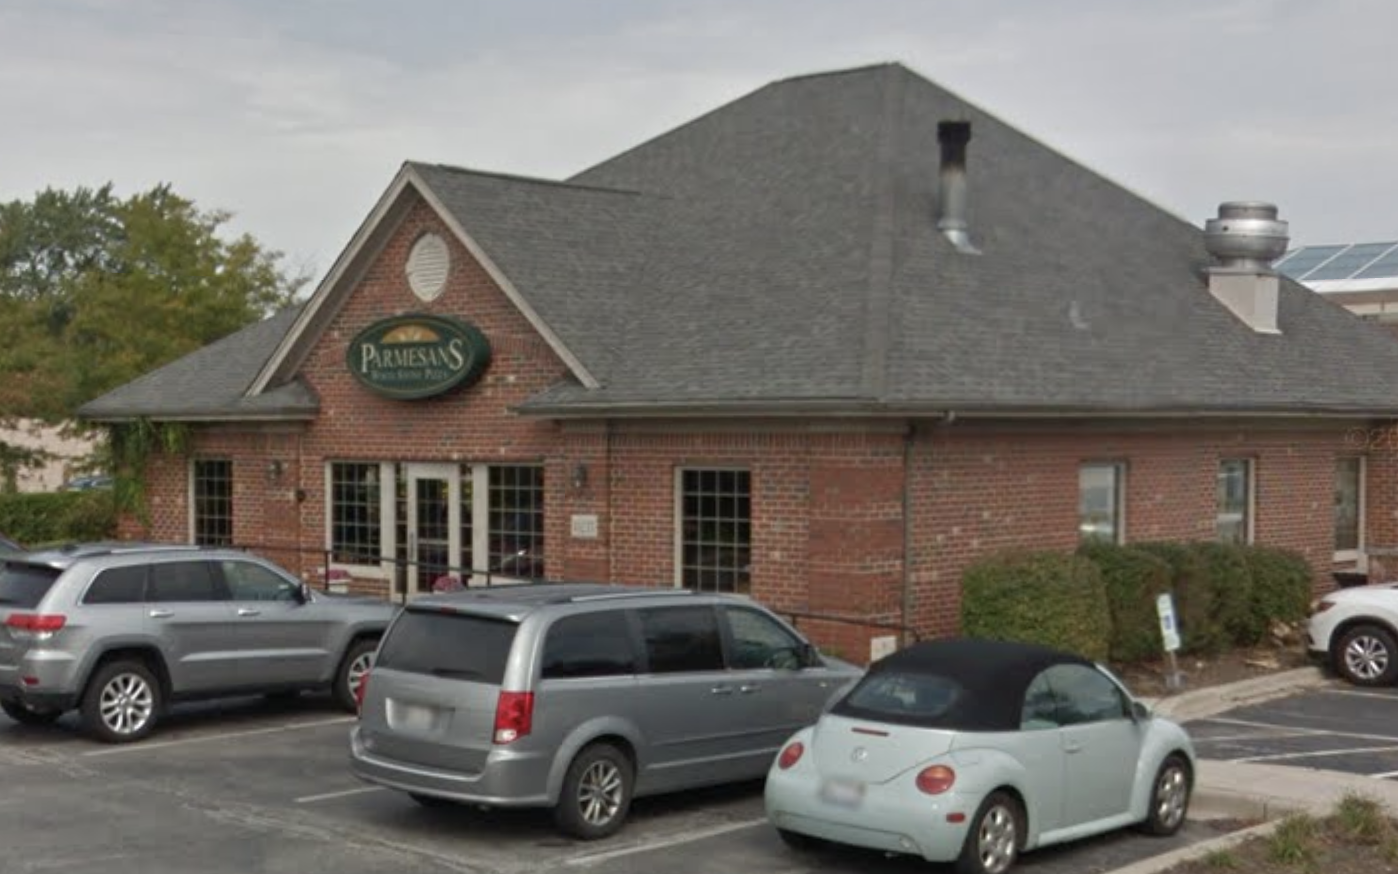 A large brick restaurant exterior with cars parked in front.